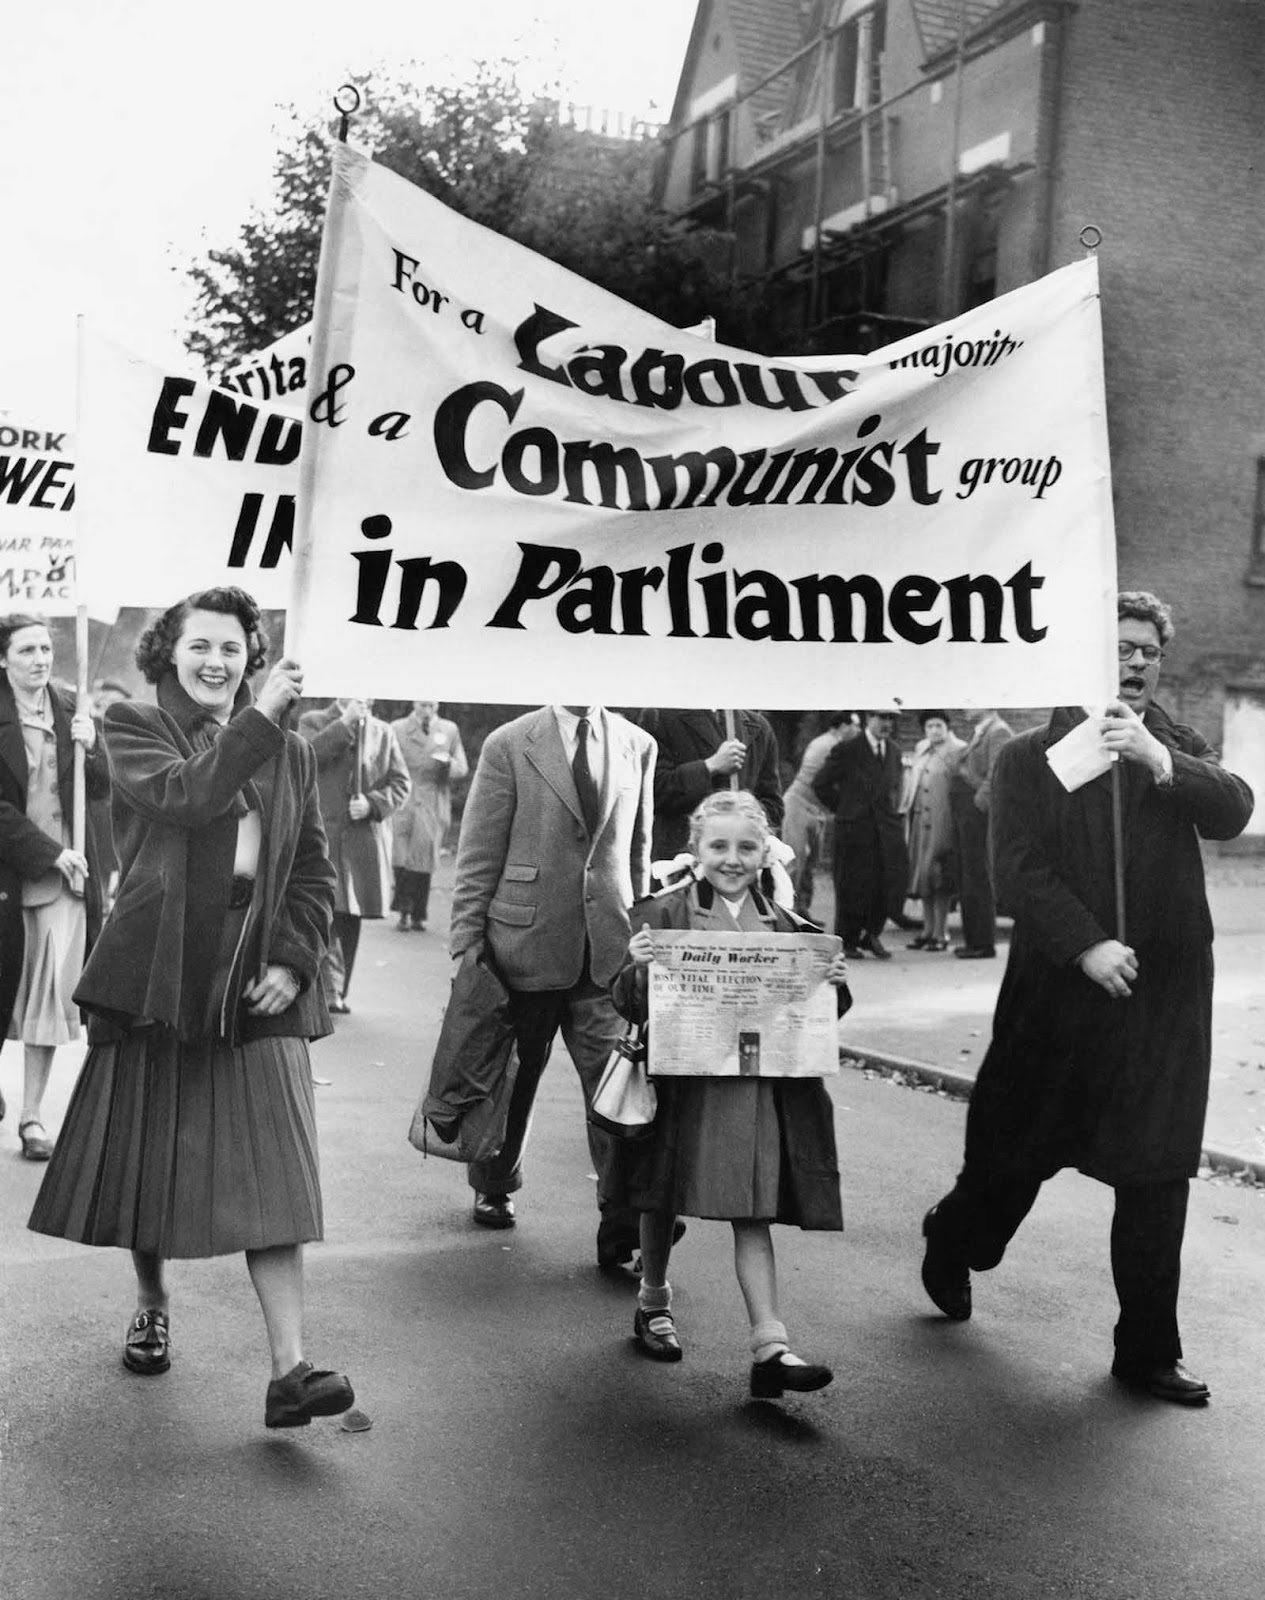 Supporters of Communist candidate J. R. Campbell marching through Woodford in Essex in the run-up to the general election, Campbell is up against Conservative candidate Winston Churchill. The girl at the front is holding a copy of 'The Daily Worker'. 1951